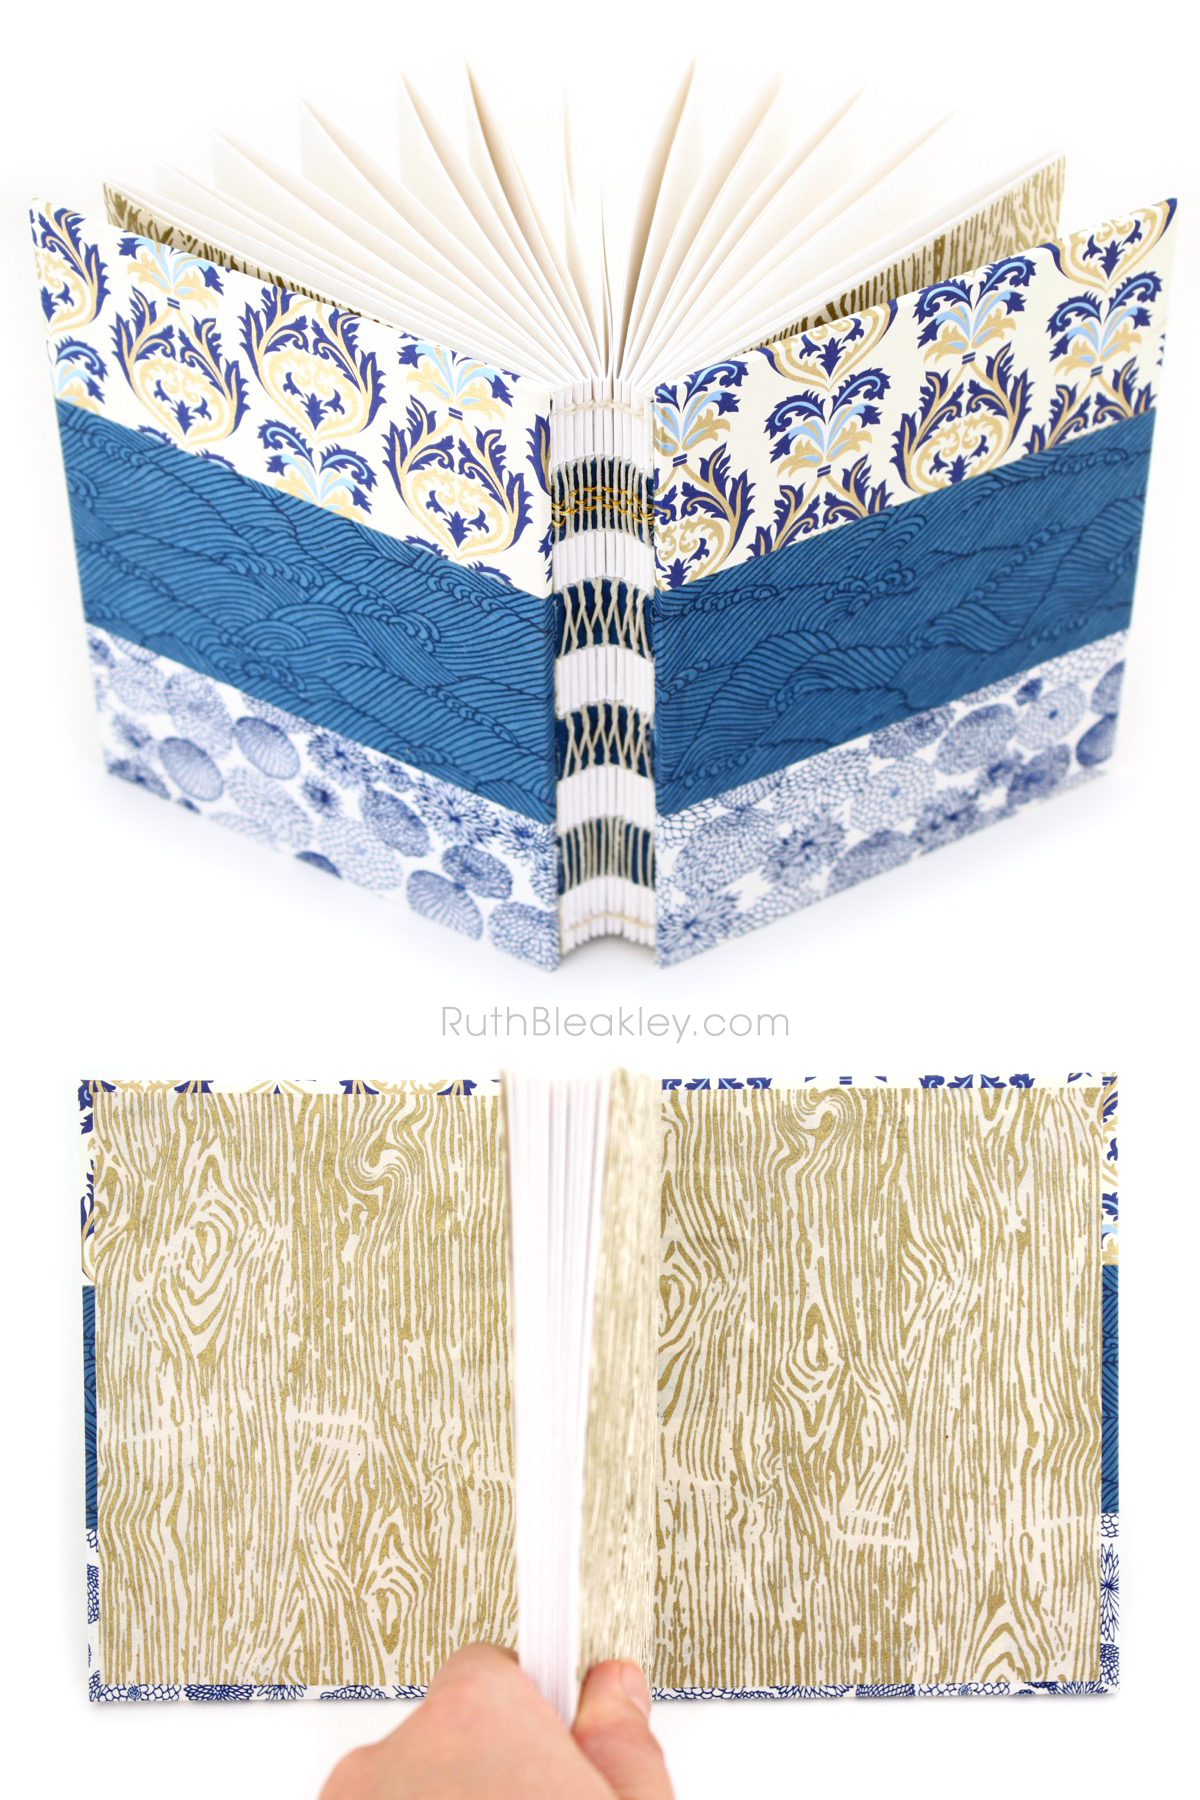 Handmade Book with Blue Waves and Gold Florentine Paper from Ruth Bleakley - French Link Stitch